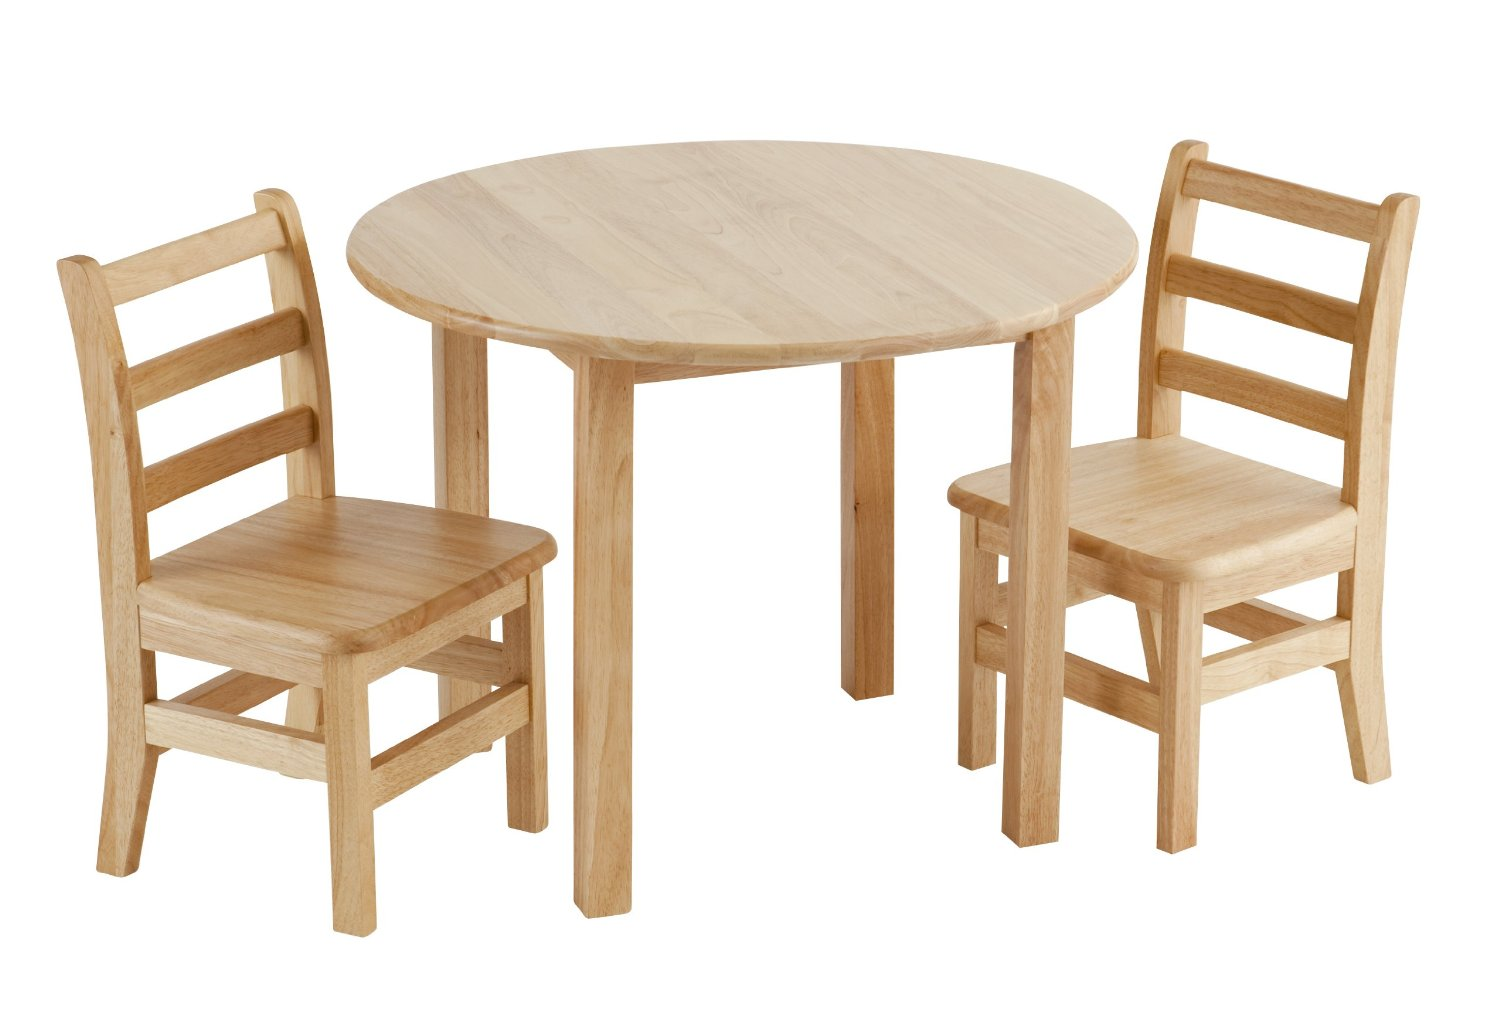 Wooden Table And Chairs Game Tables And Chairs For Children Beautiful Home And